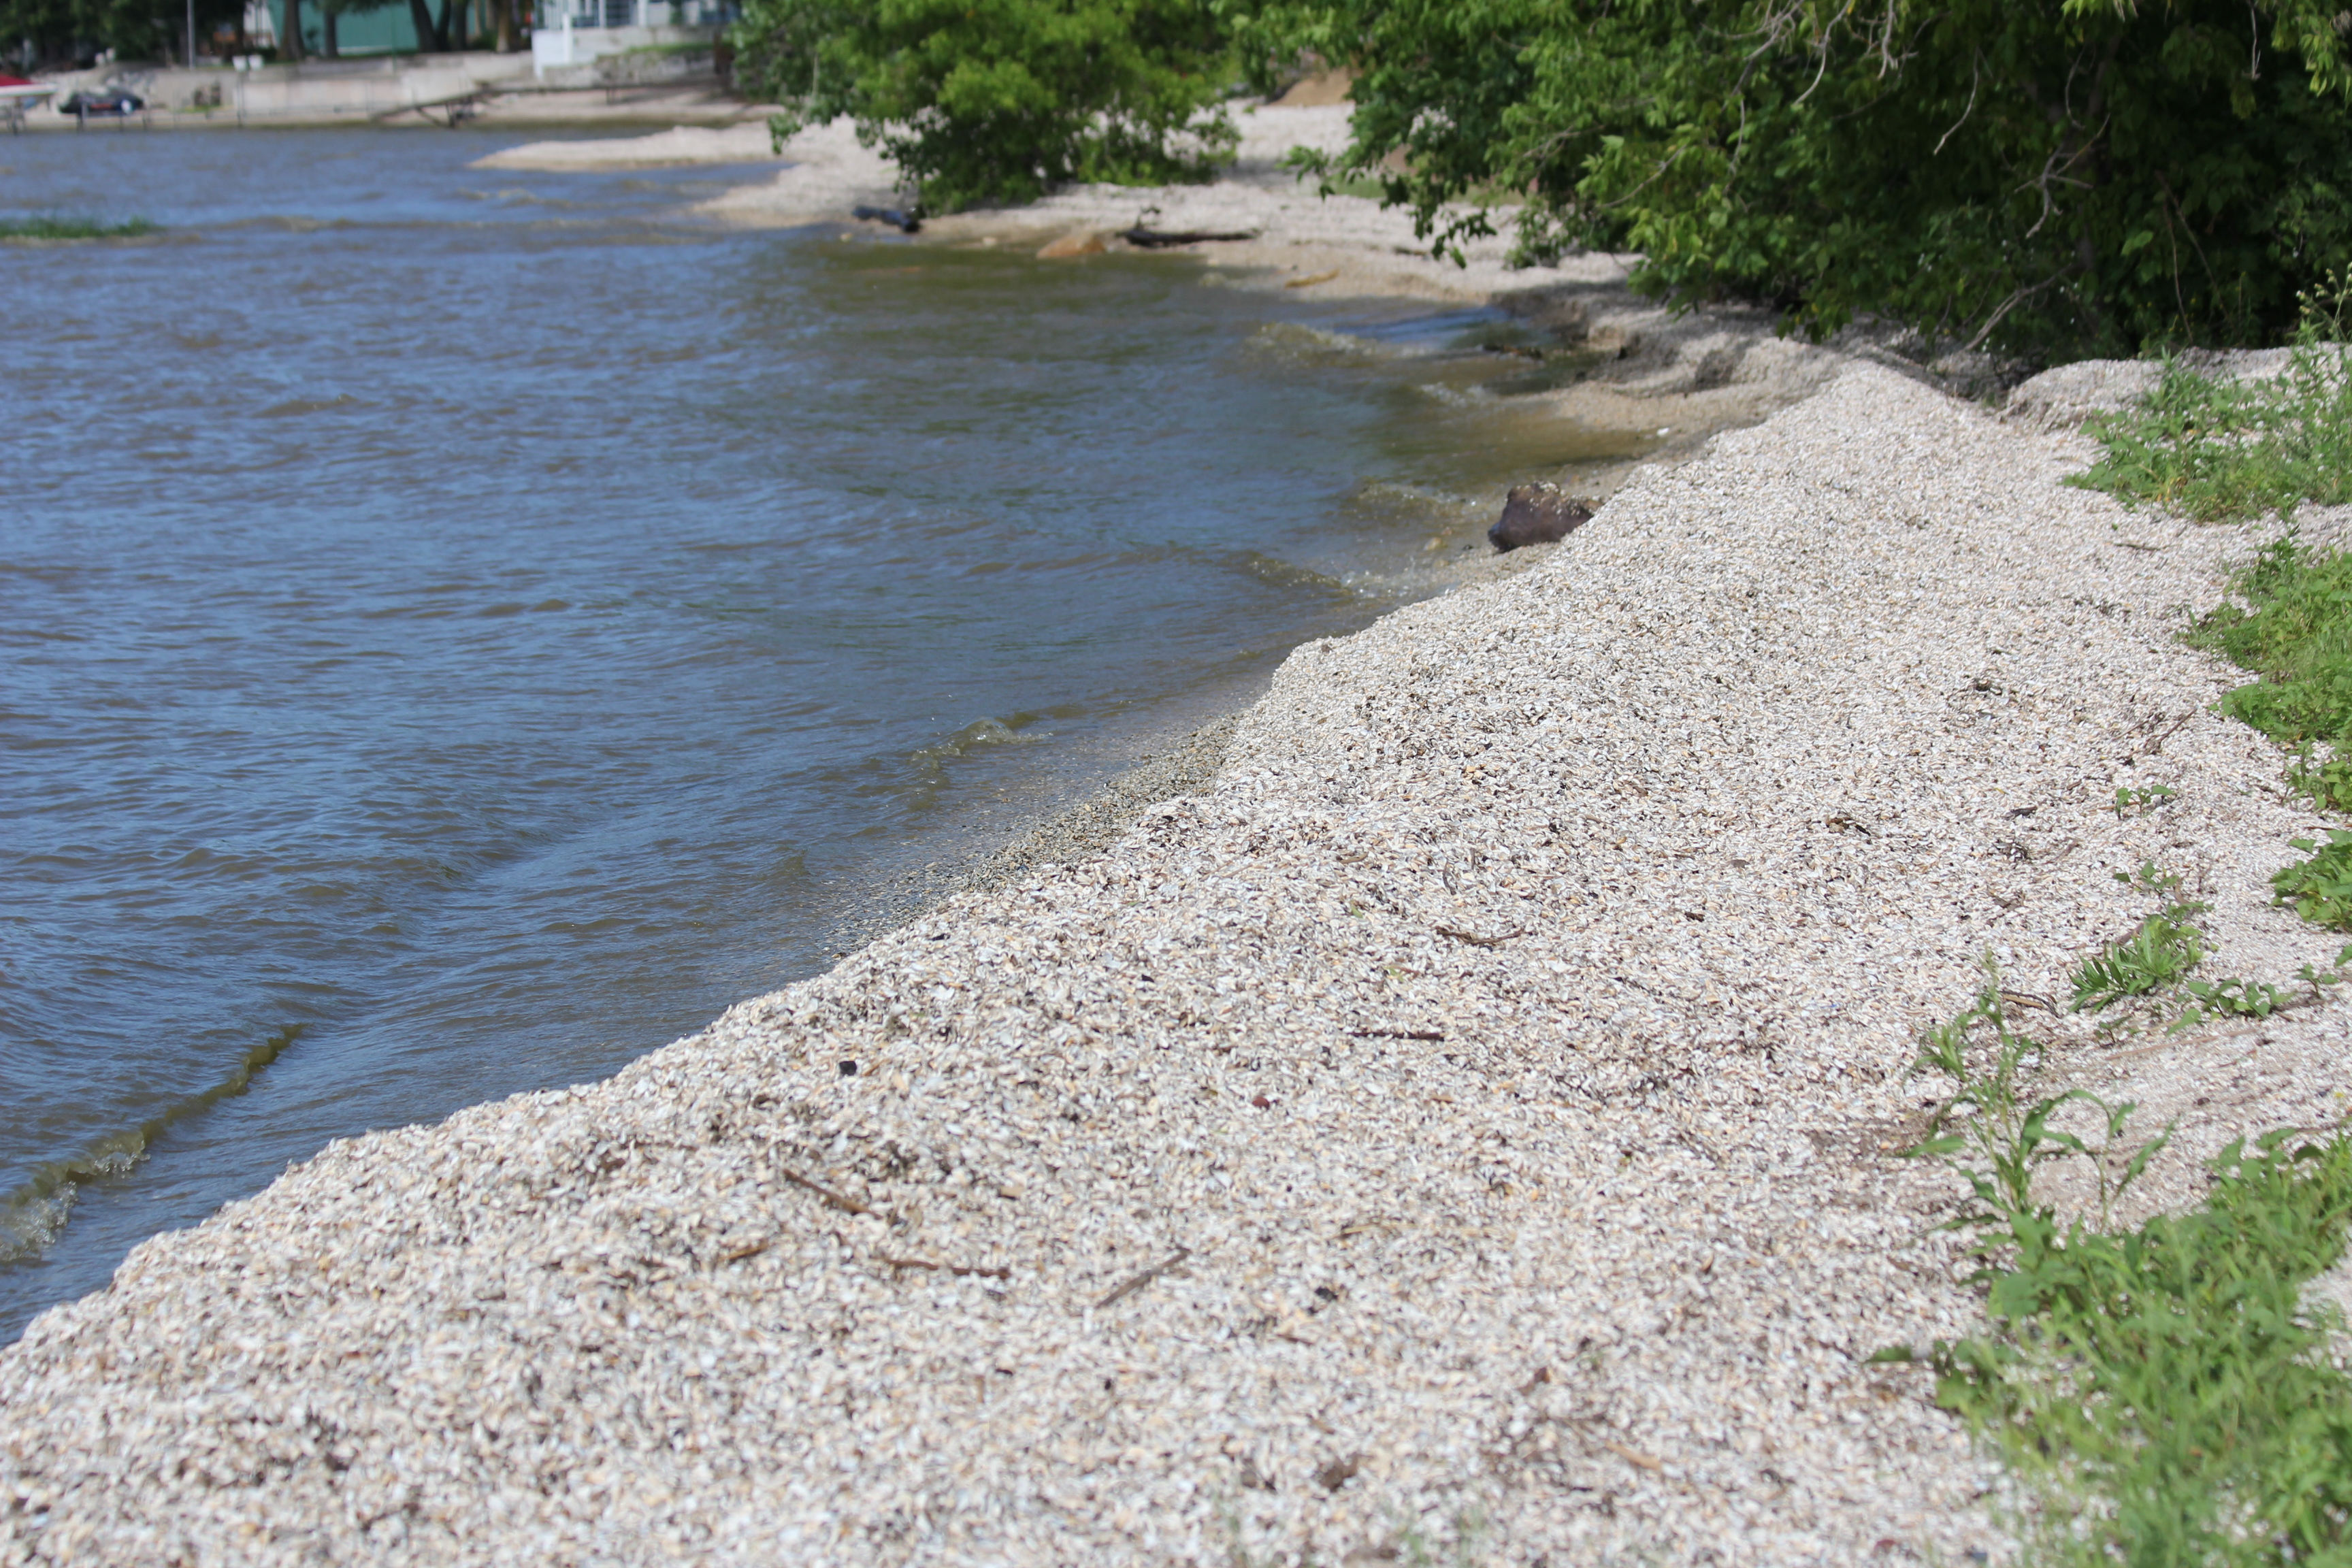 zebra muscles in the hudson river Preventing the spread of zebra mussels  the grand river dam authority joined the oklahoma zebra mussel task force two decades.